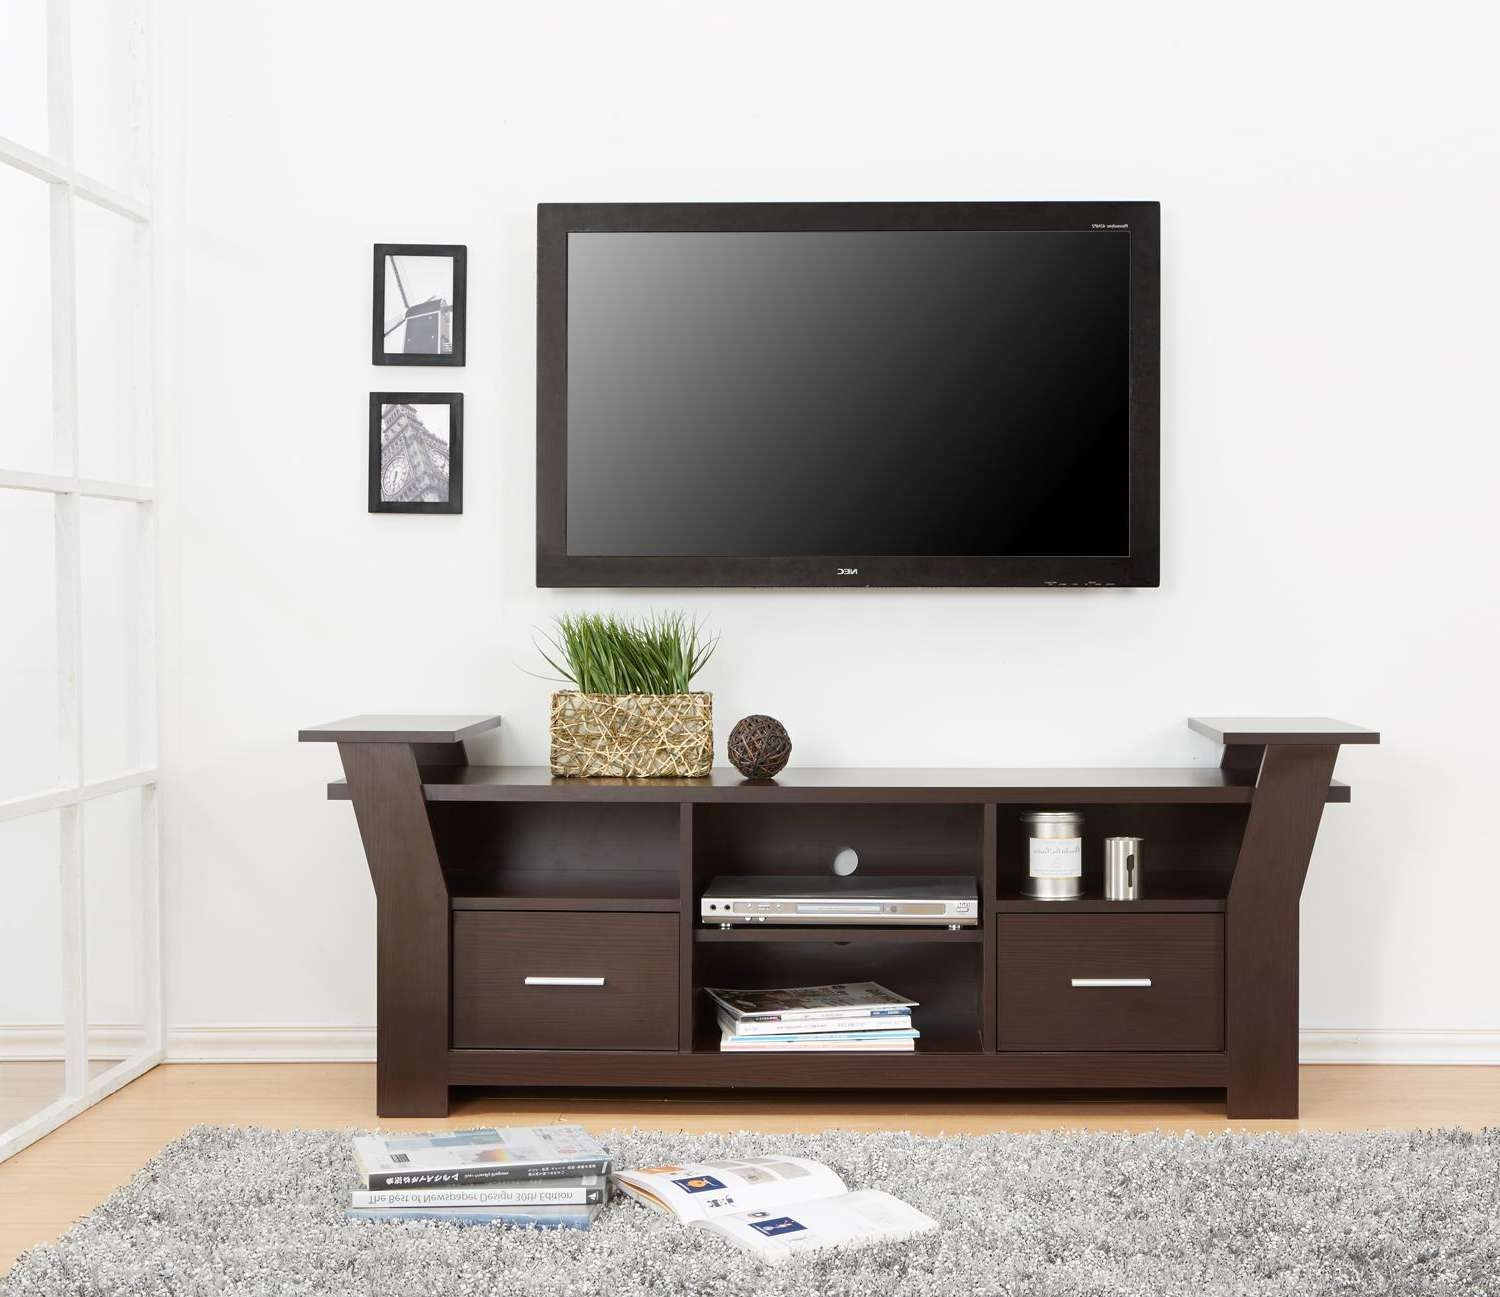 Modern Wooden Tv Stand With Storage Two Drawers And Four Shelves Inside Tv Stands With Drawers And Shelves (View 4 of 15)